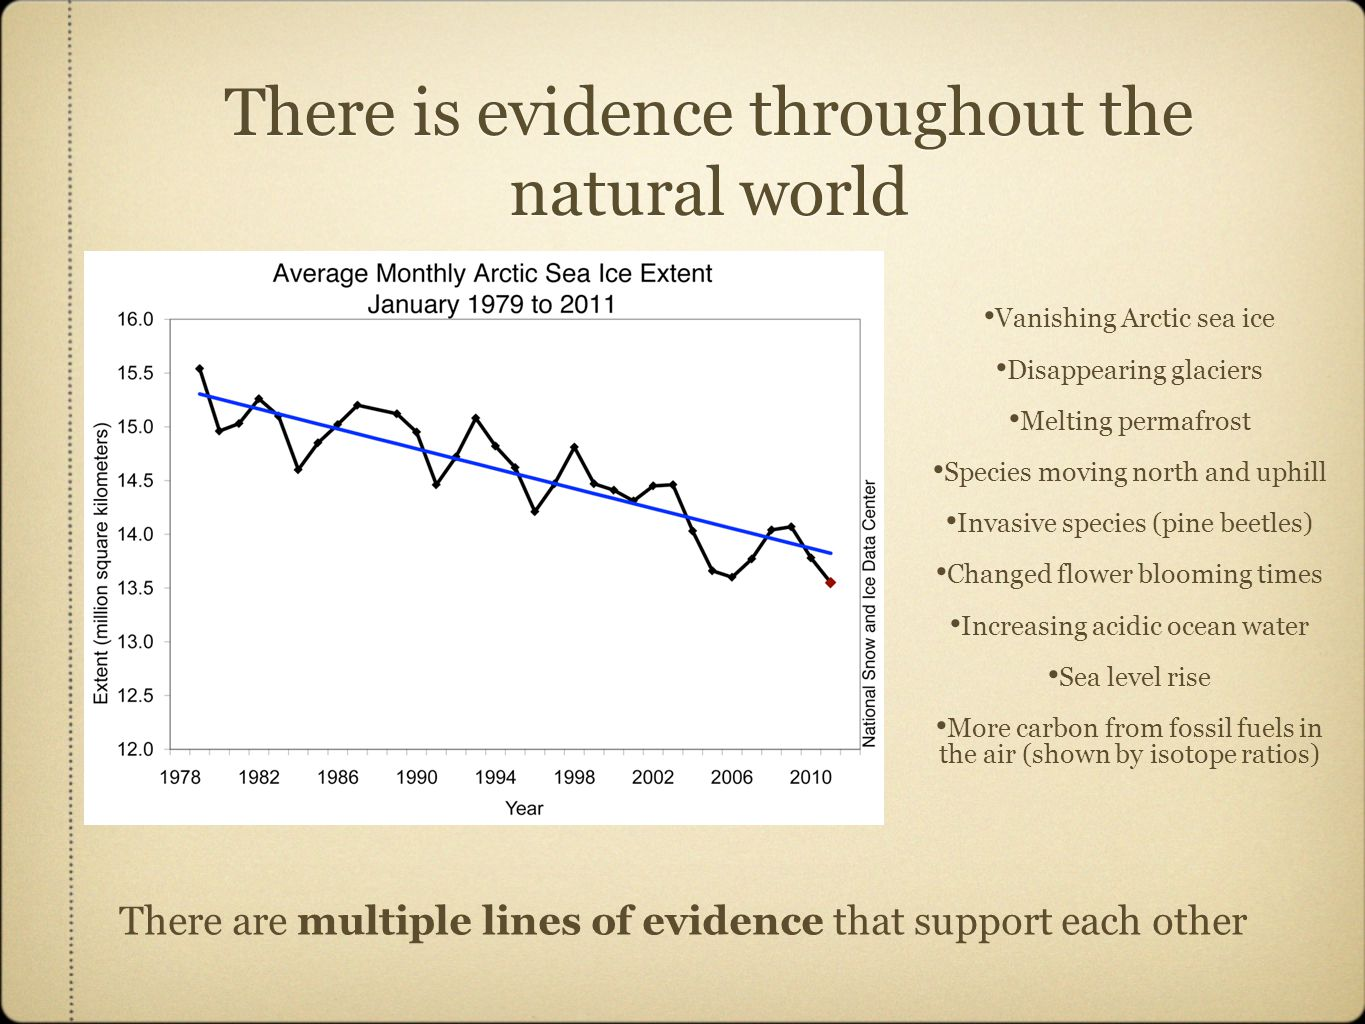 There is evidence throughout the natural world Vanishing Arctic sea ice Disappearing glaciers Melting permafrost Species moving north and uphill Invasive species (pine beetles) Changed flower blooming times Increasing acidic ocean water Sea level rise More carbon from fossil fuels in the air (shown by isotope ratios) There are multiple lines of evidence that support each other